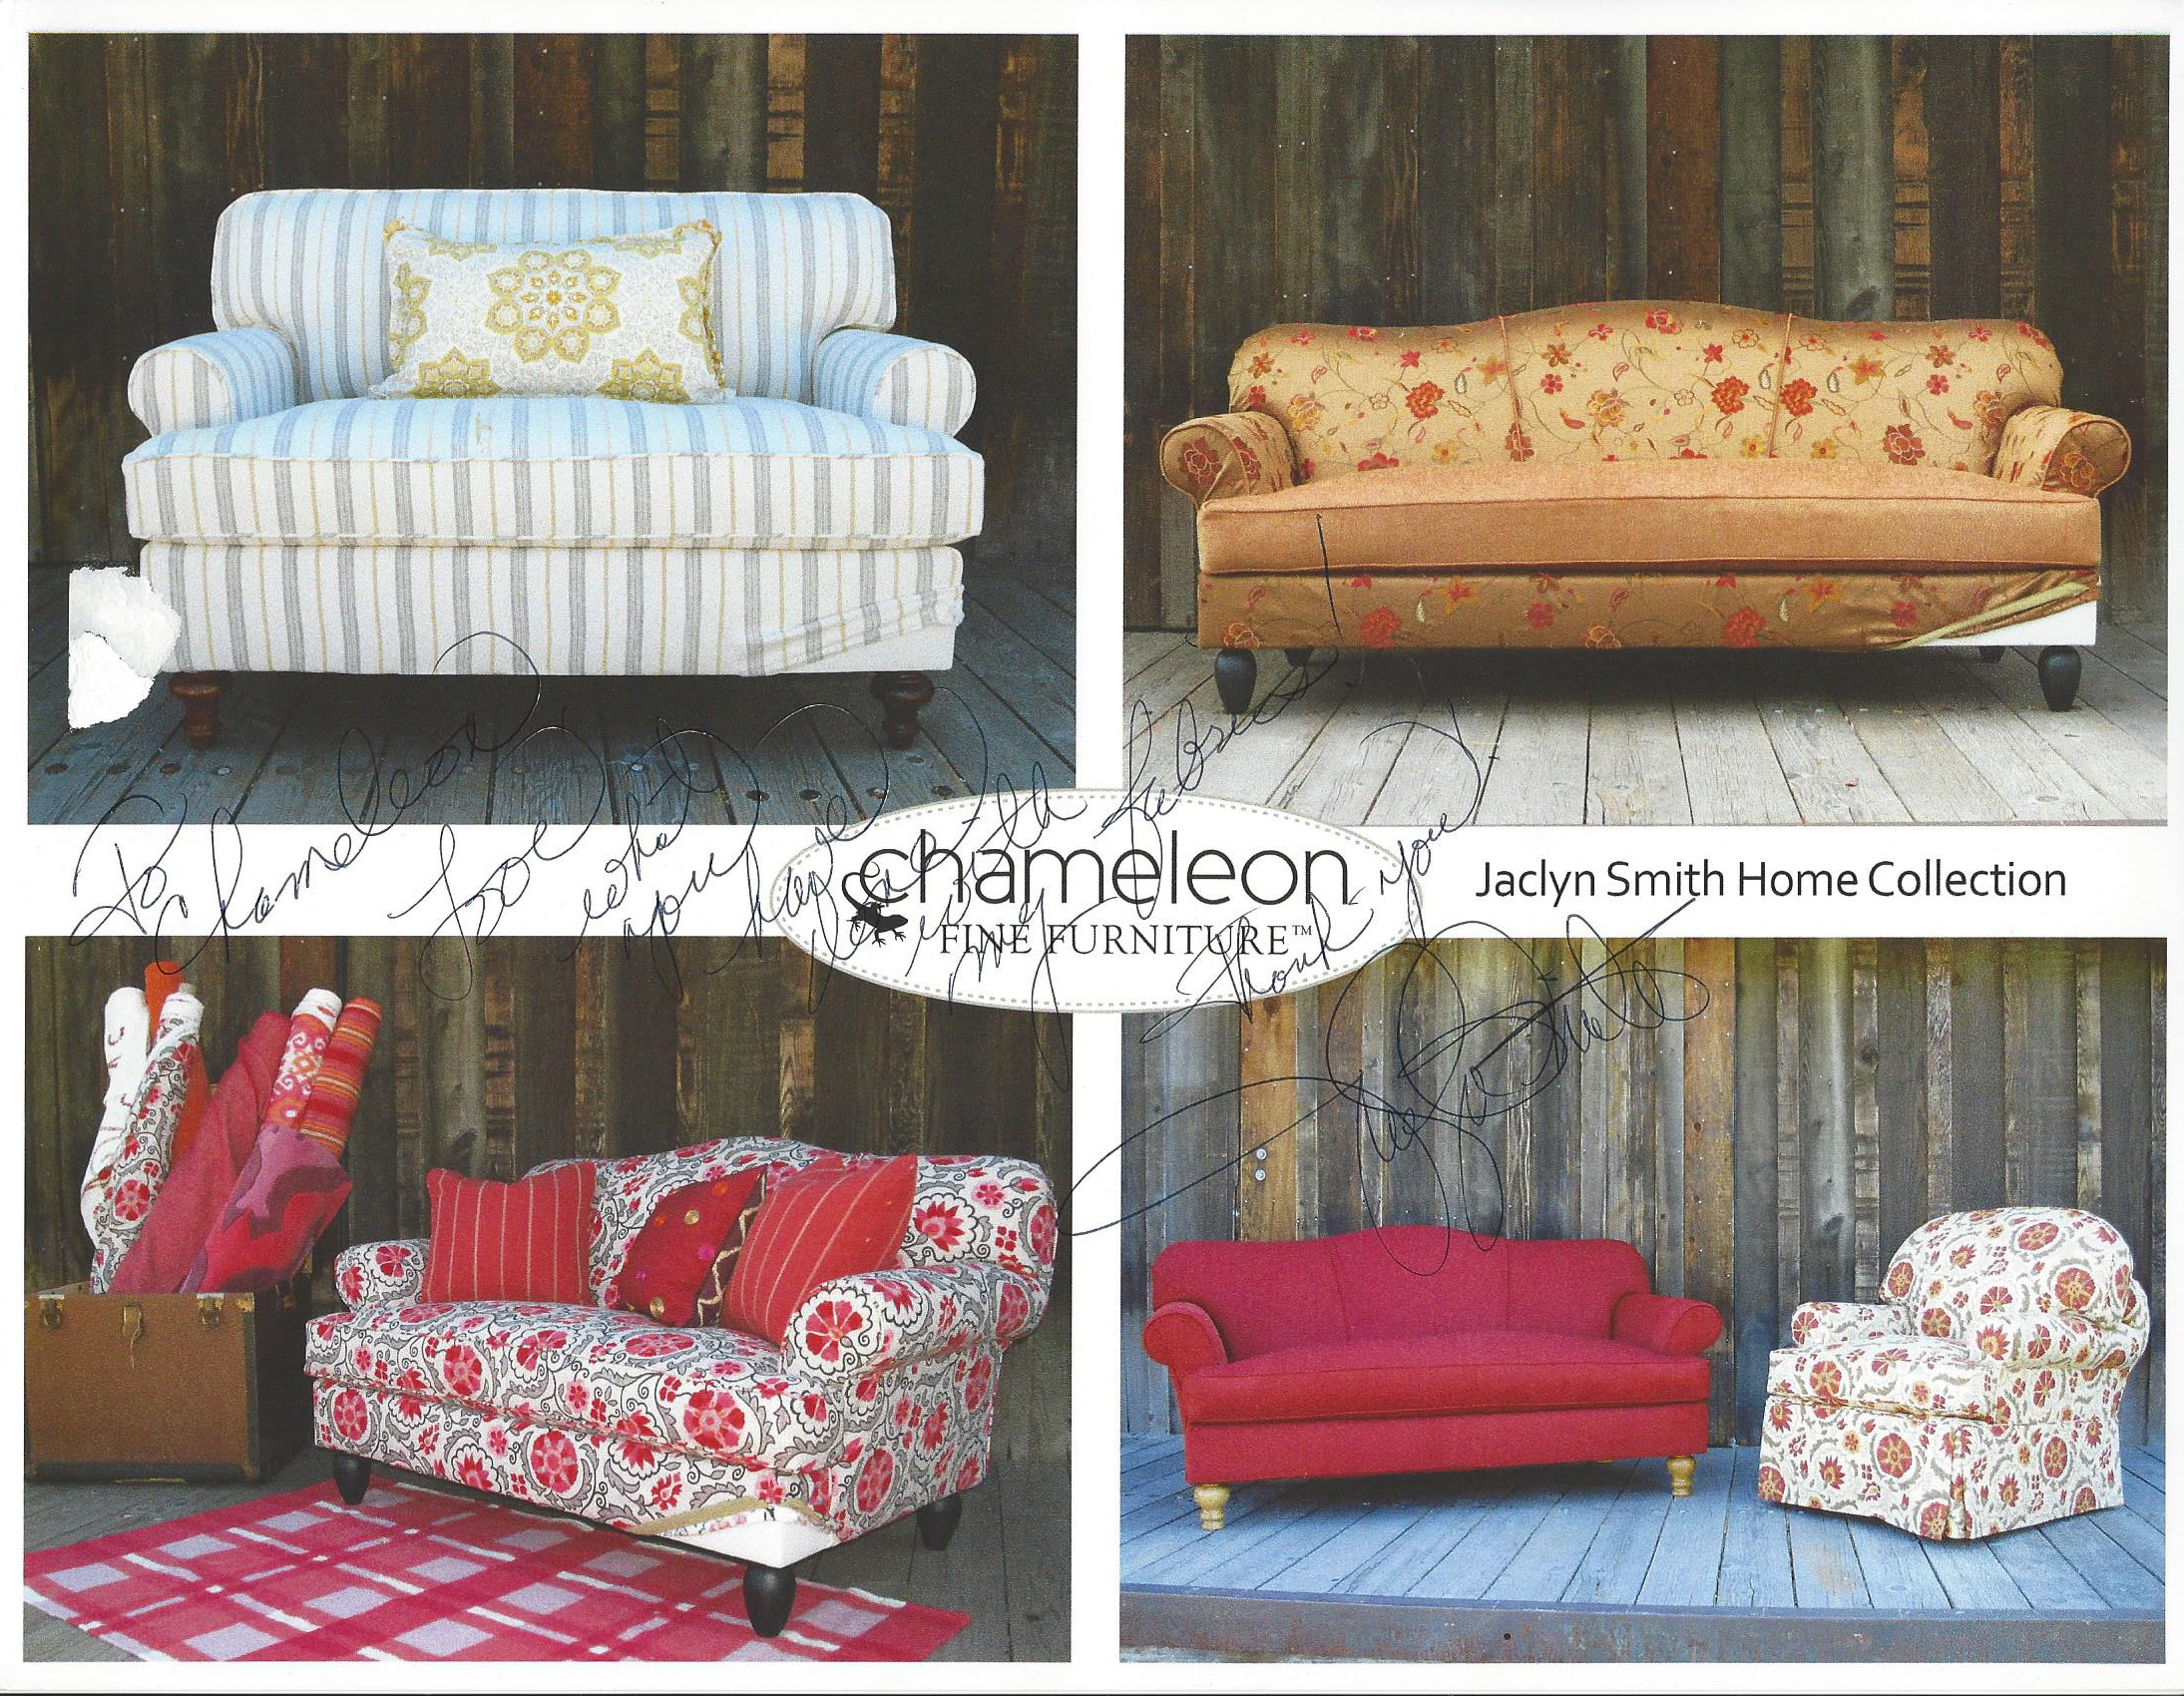 Photo Of Chameleon Fine Furniture™ Dressed In Jaclyn Smithu0027s Fabrics,  Signed By Jaclyn Smith Herself.